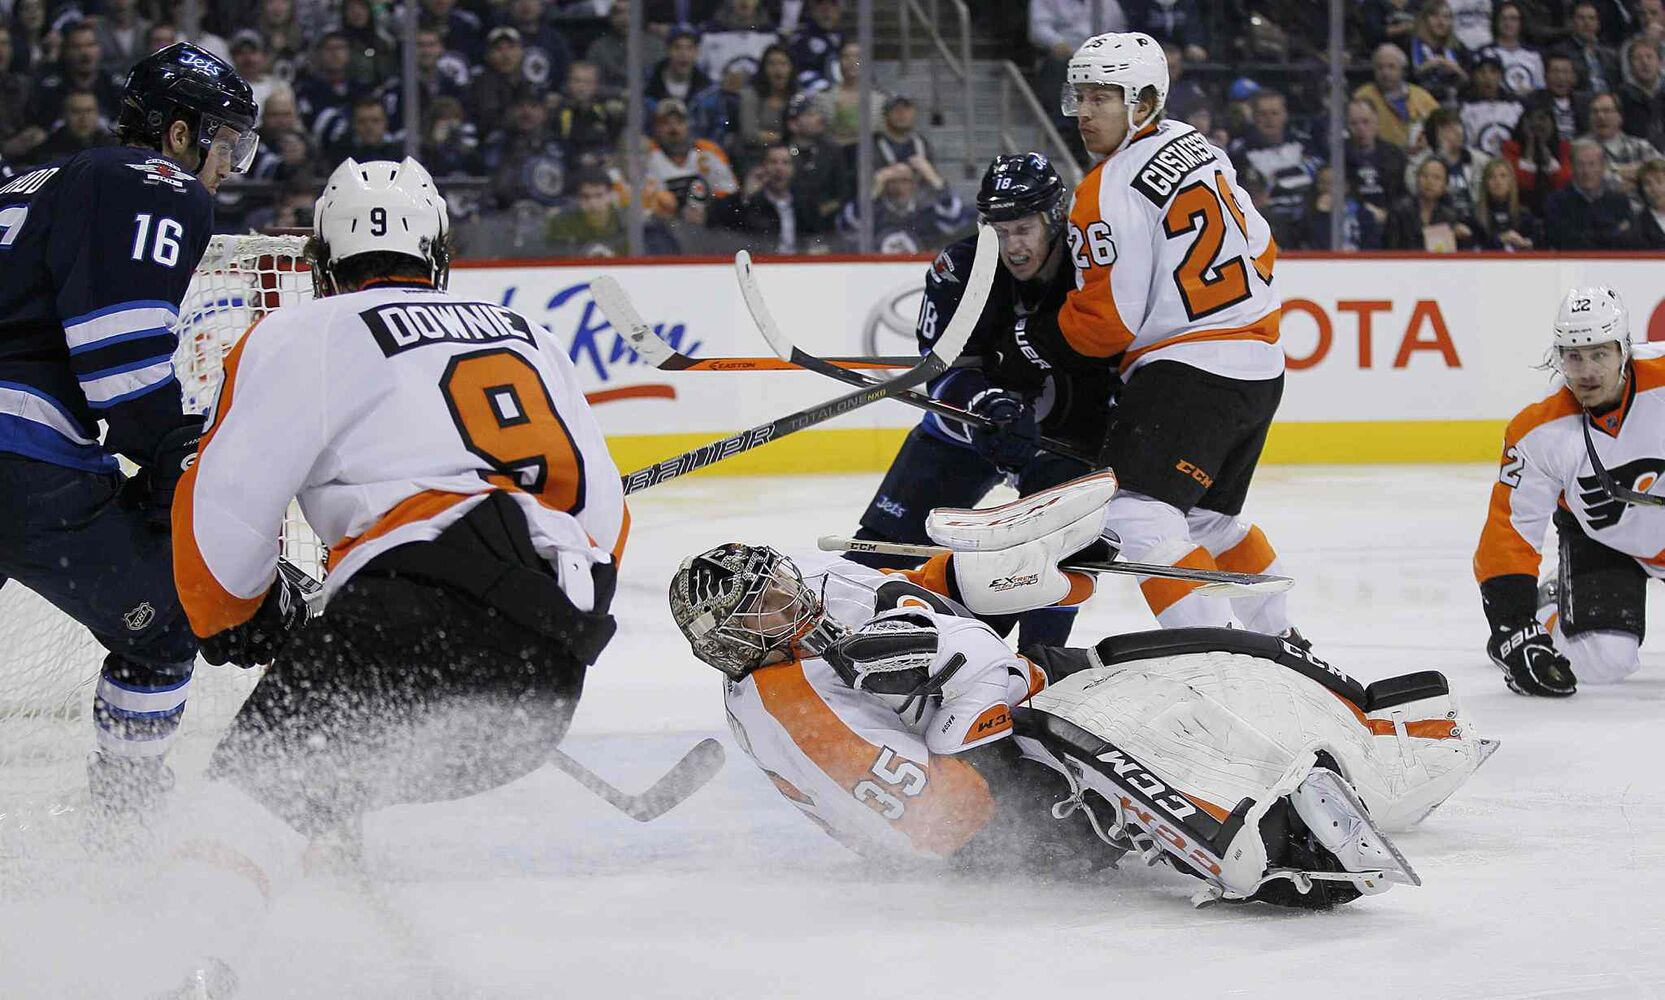 Philadelphia Flyers goaltender Steve Mason (35) stops the shot from Winnipeg Jets captain Andrew Ladd (16) as Erik Gustafsson (26) of the Flyers holds back Jets centre Bryan Little (18) as he looks for the rebound during the second period. (JOHN WOODS / THE CANADIAN PRESS)